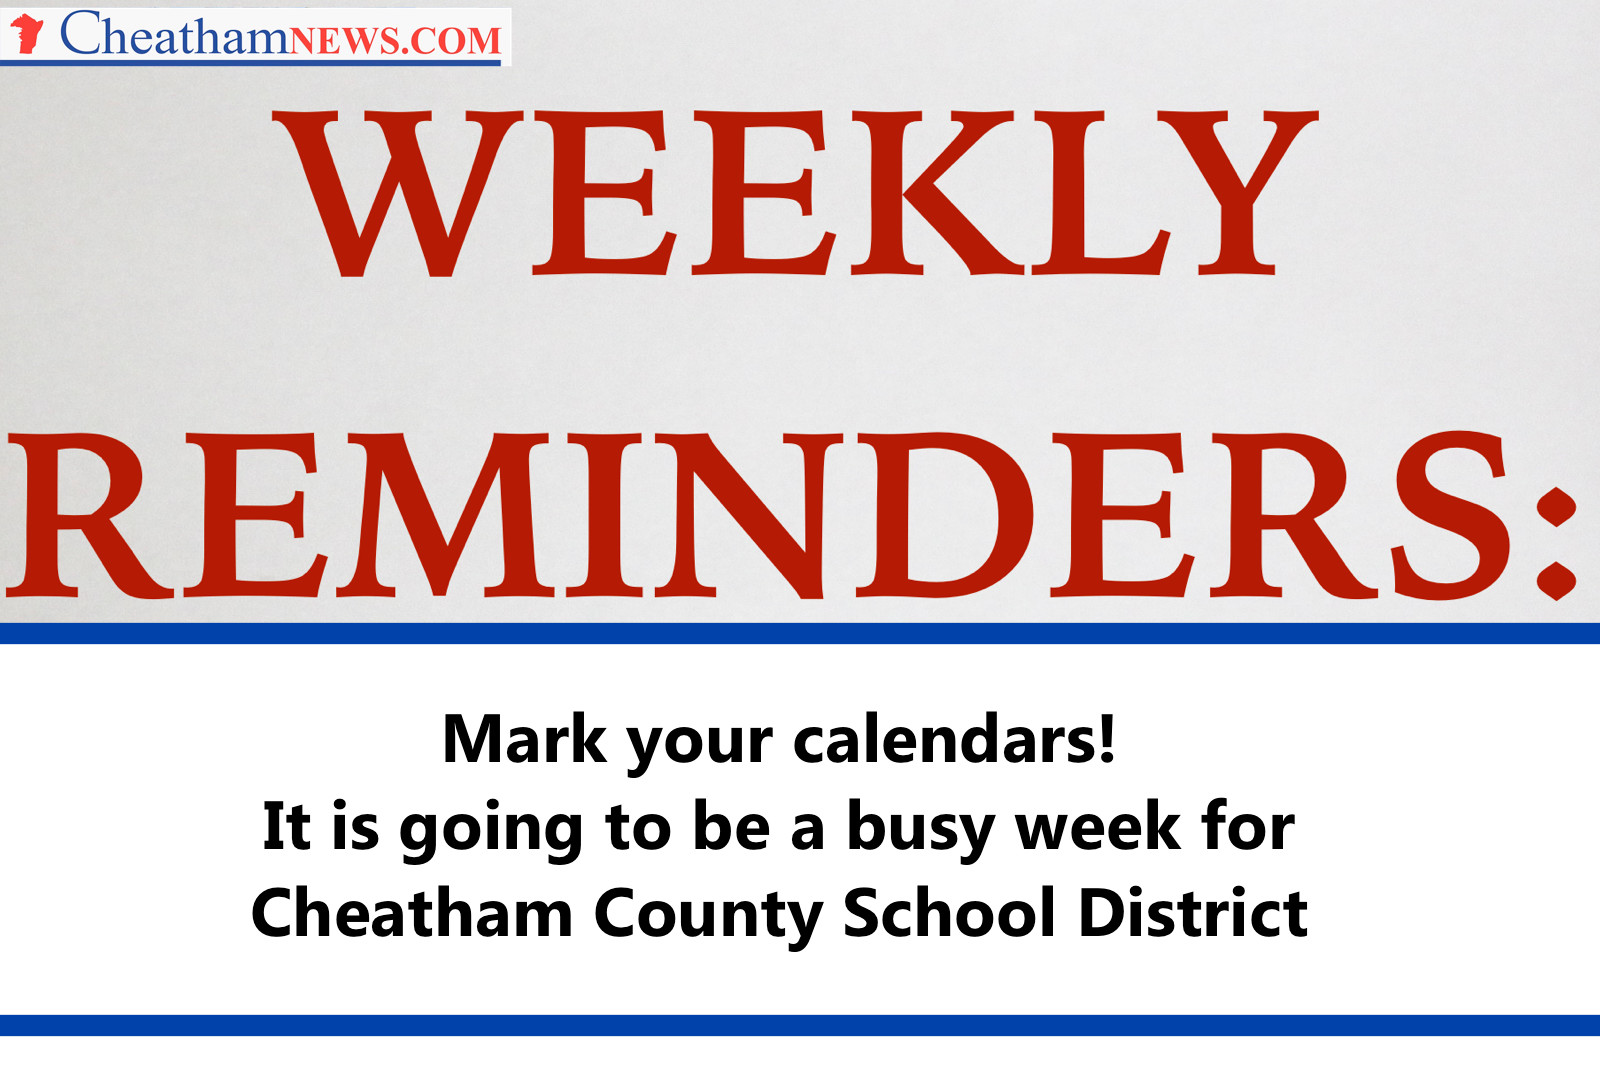 Weekly Reminder Calendar : Weekly reminder for cheatham county school district